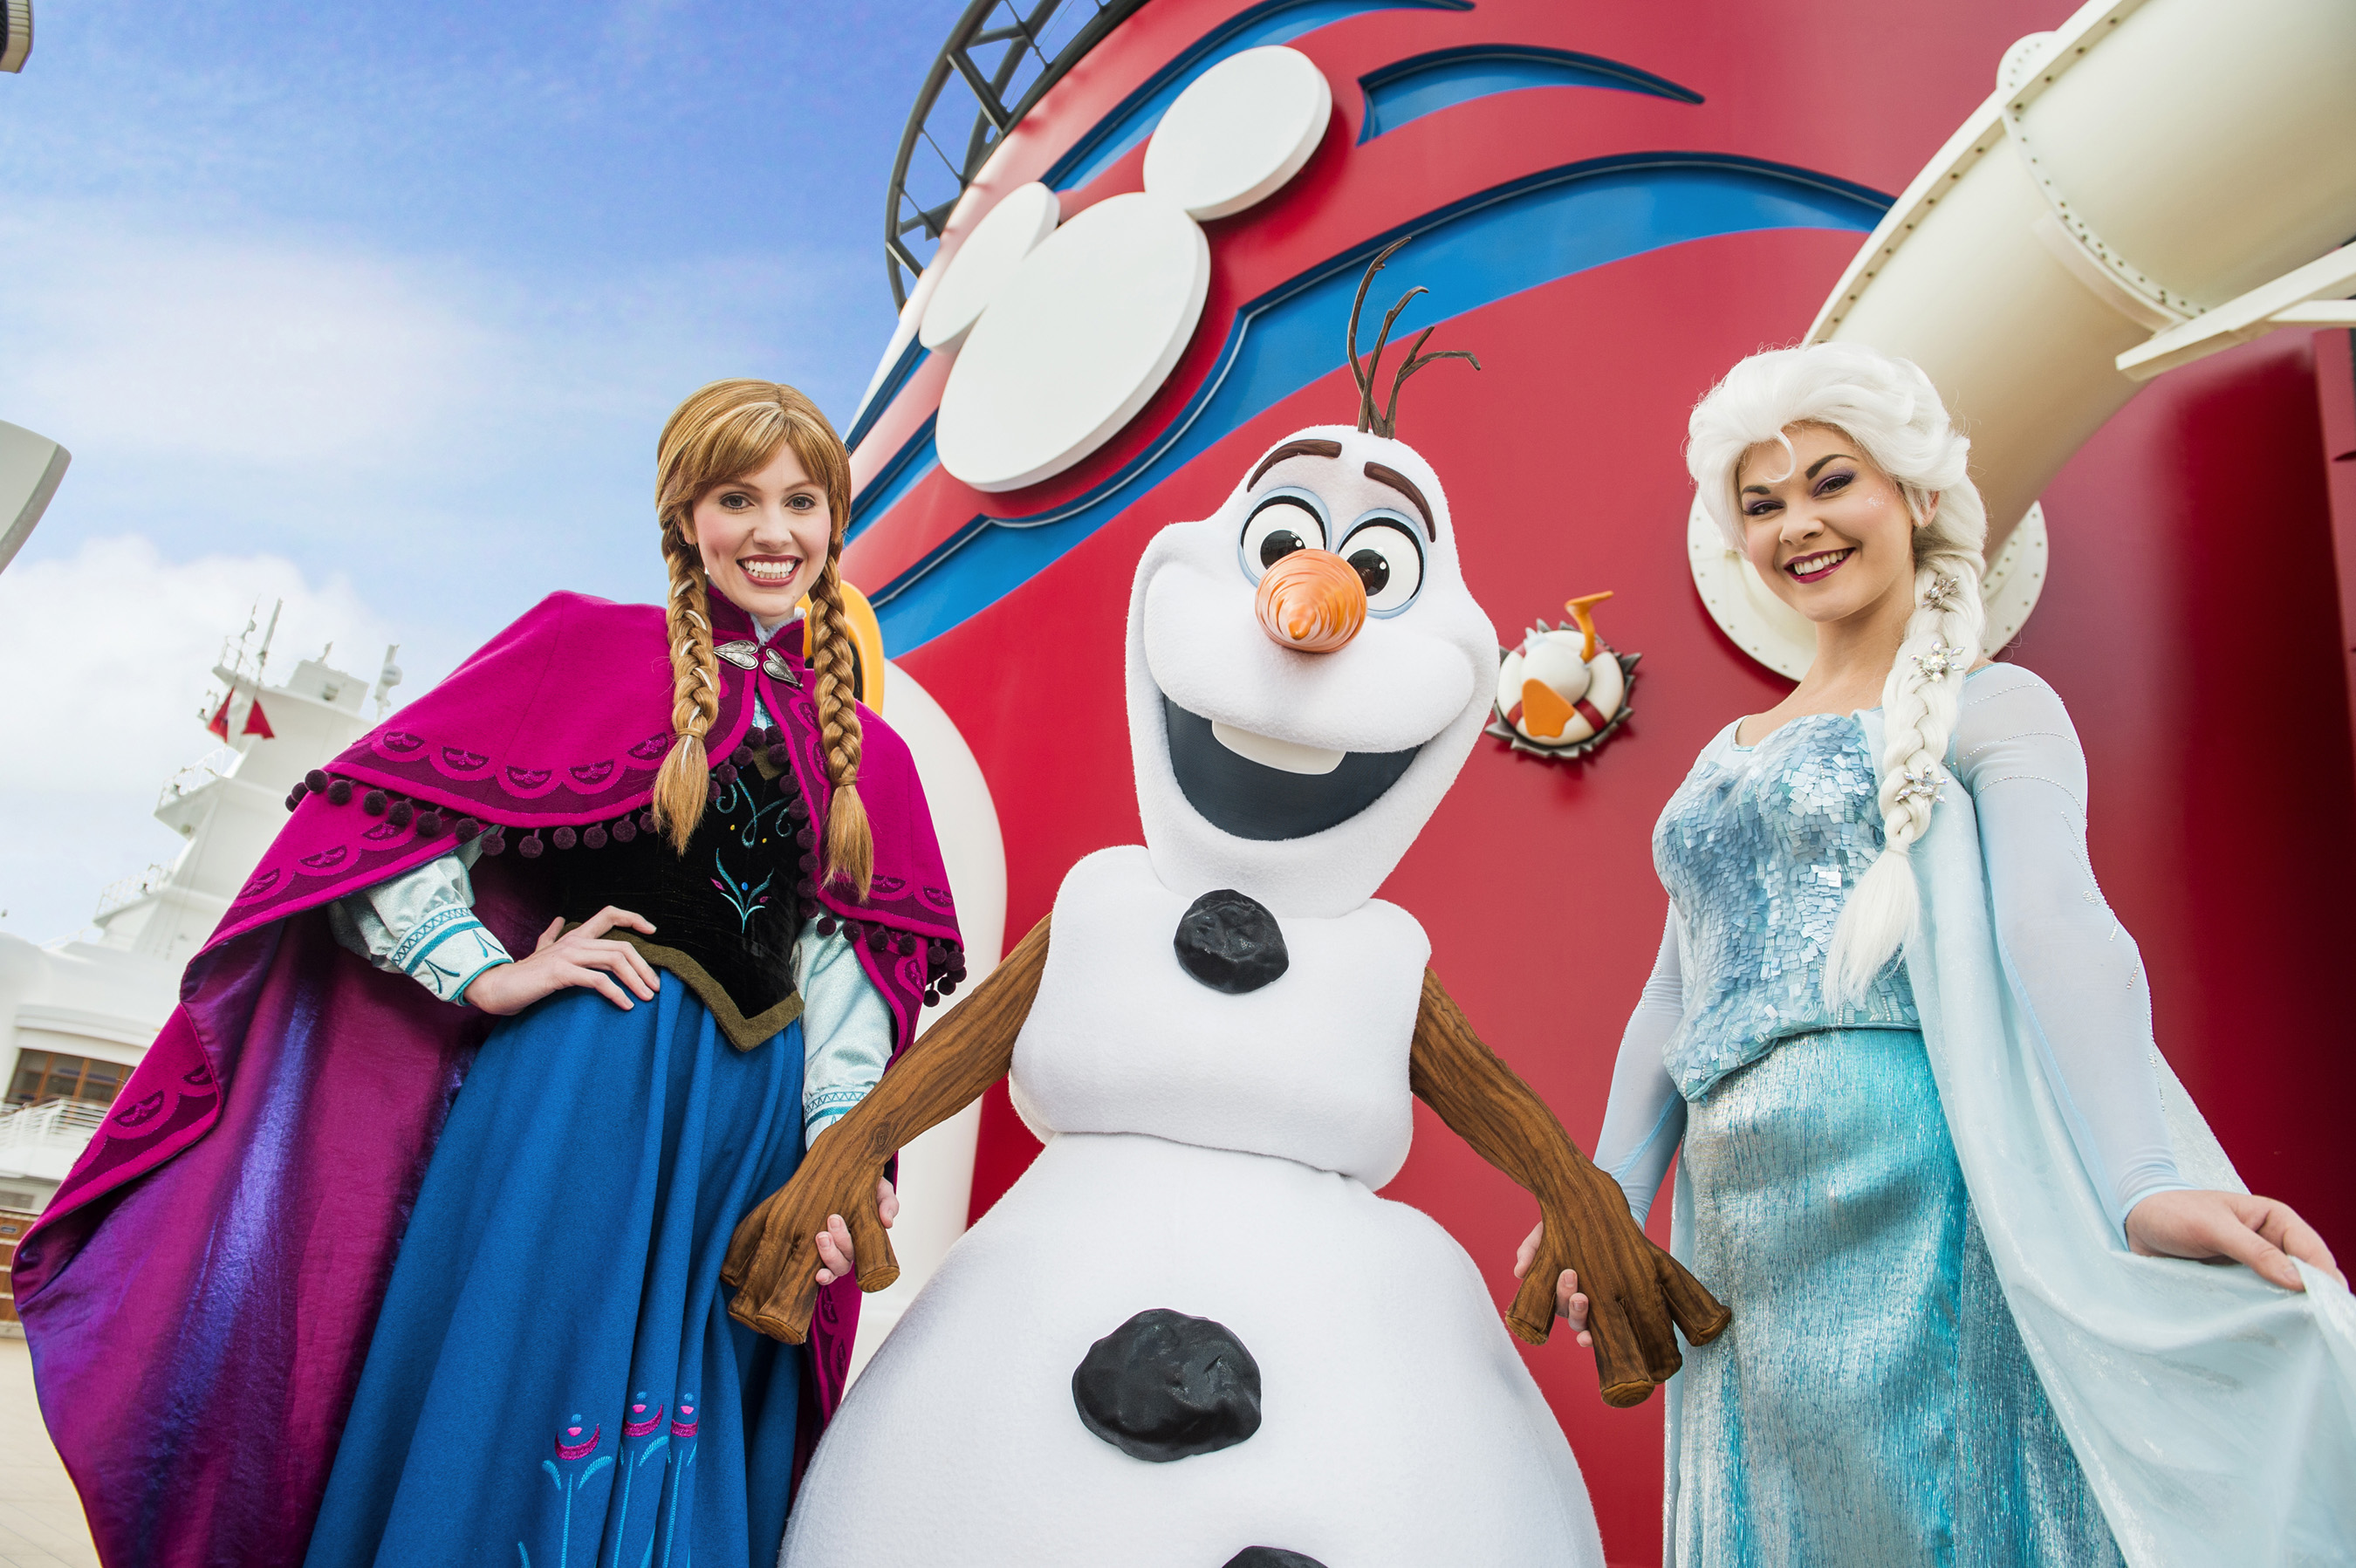 Frozen at sea coming to disney cruise line summer 2015 magical photo by matt stroshane kristyandbryce Gallery